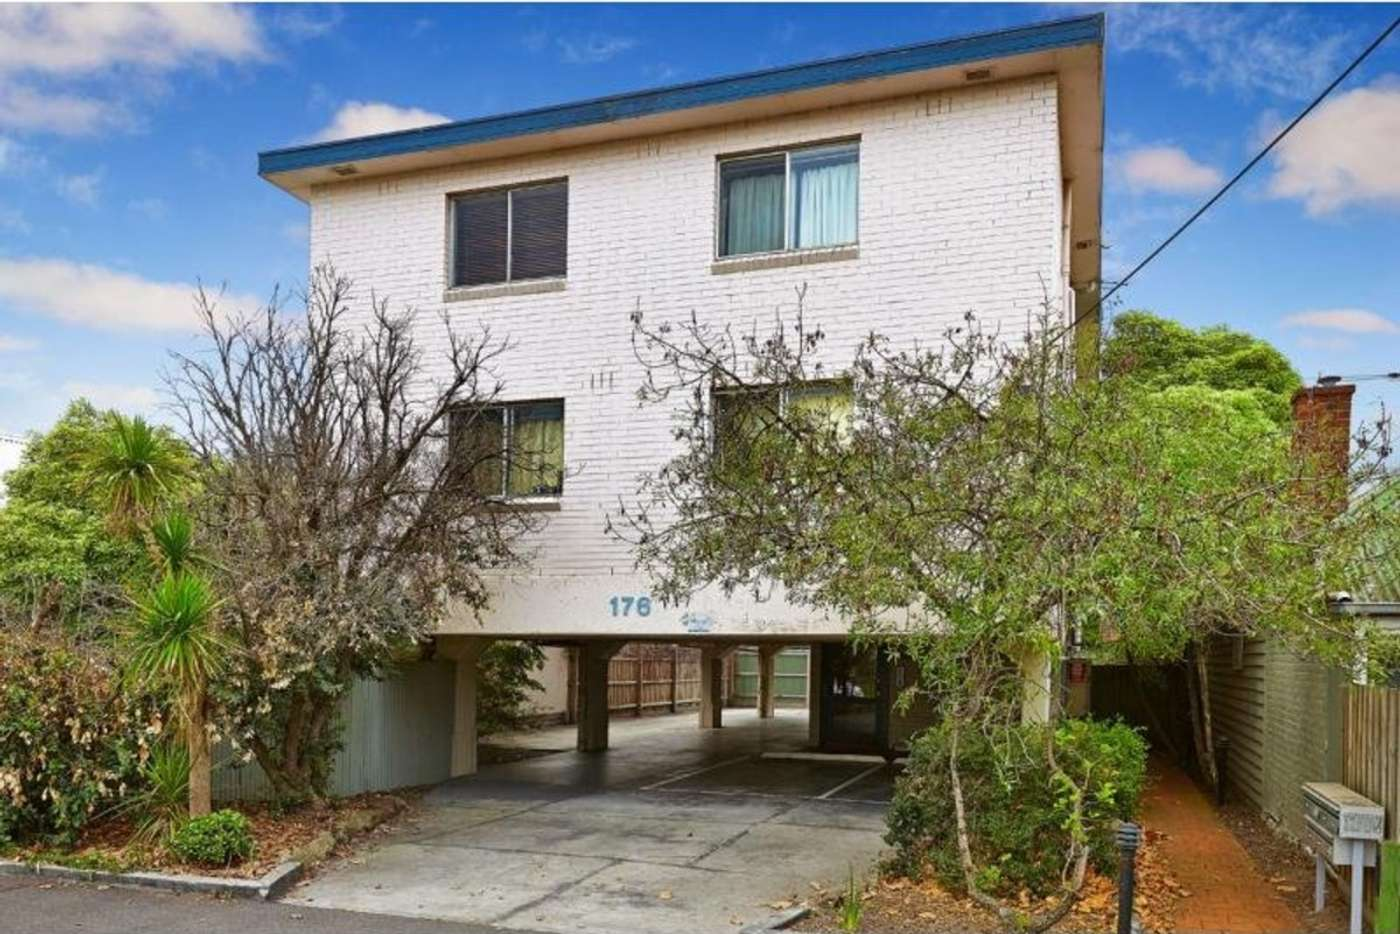 Main view of Homely apartment listing, 1/176 Liardet Street, Port Melbourne VIC 3207